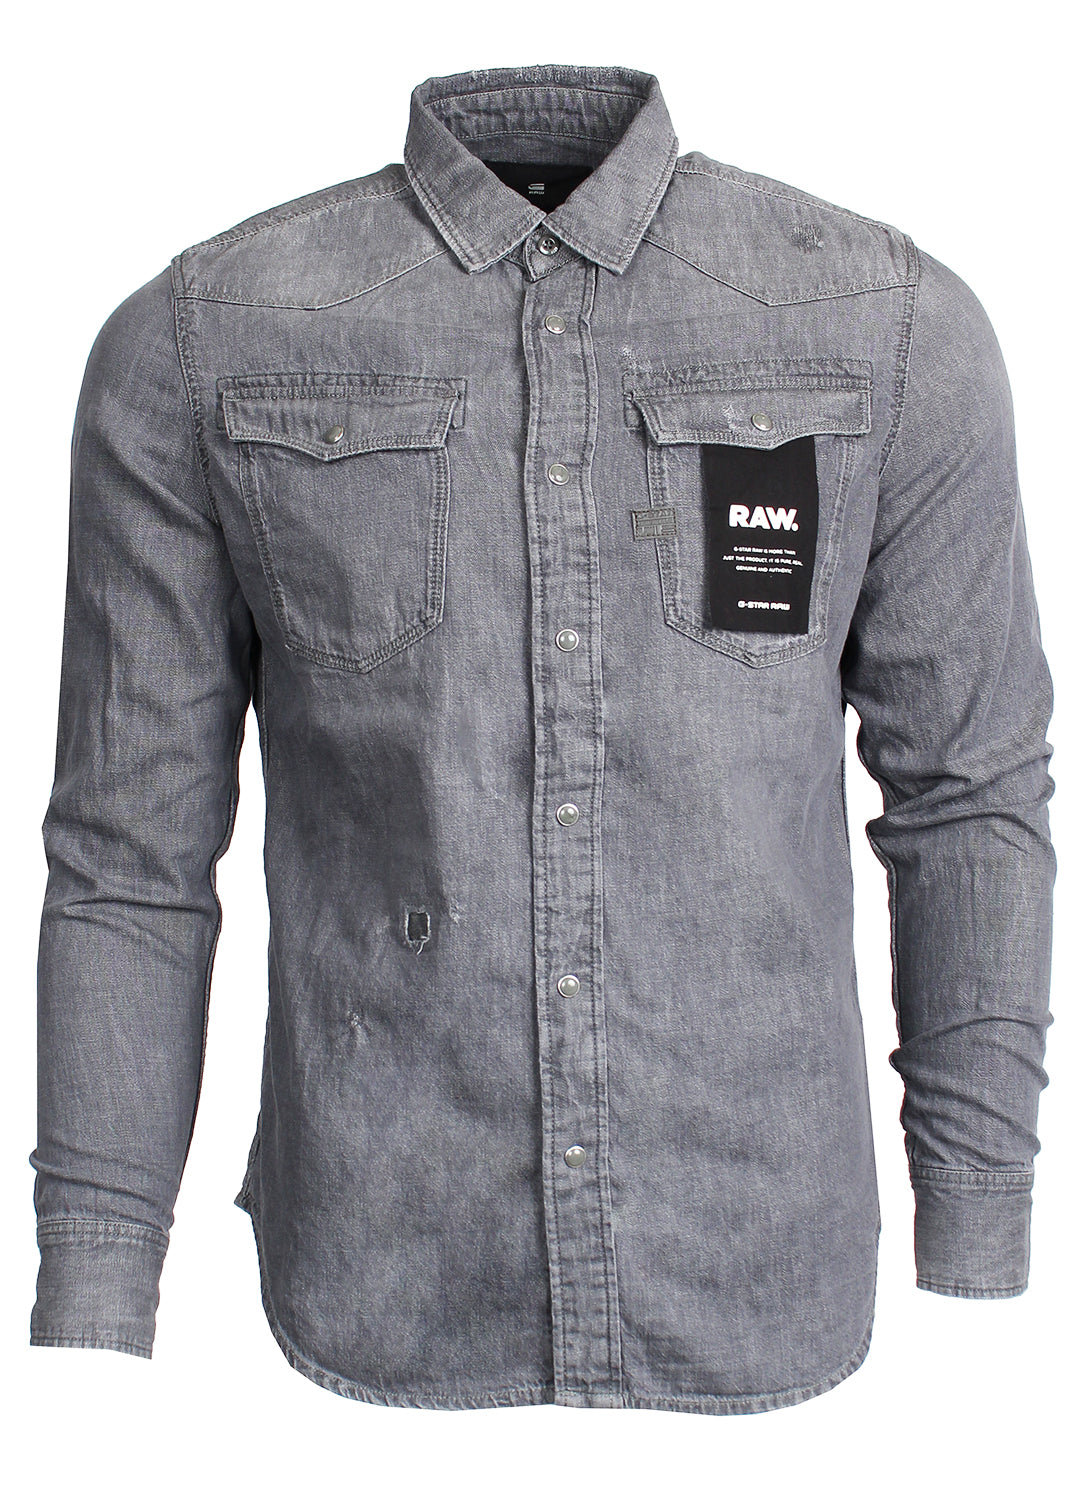 63387999a72 G-Star Raw Shirt – PureAtlanta.com